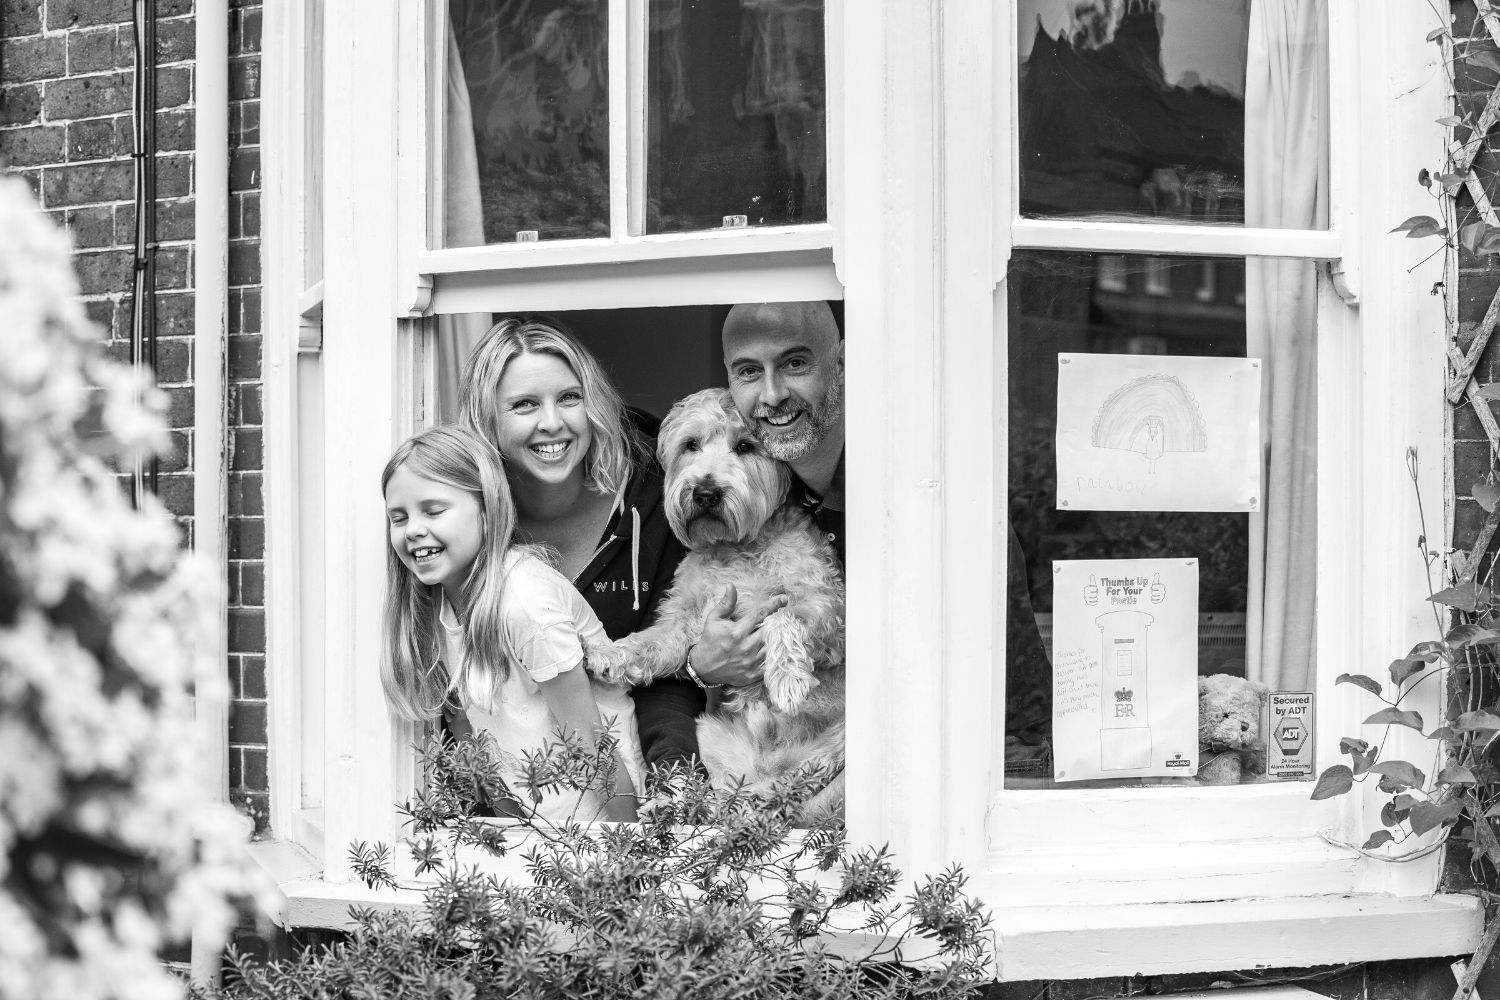 Family and dog black and white window photograph